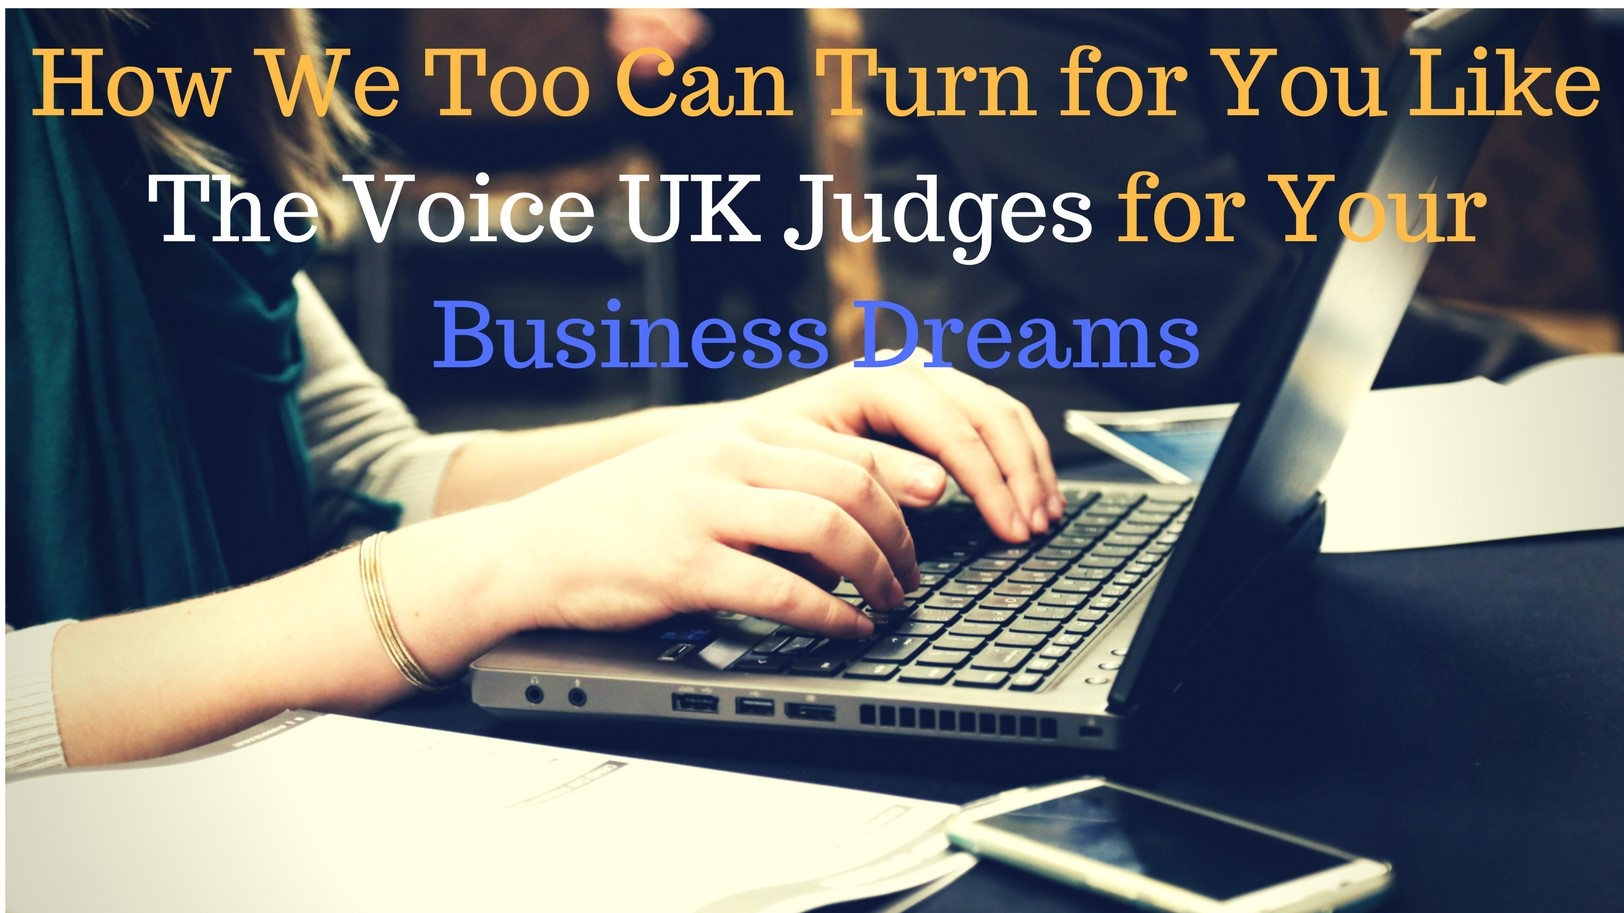 How We Too Can Turn for You Like The Voice UK Judges for Your Business Dreams